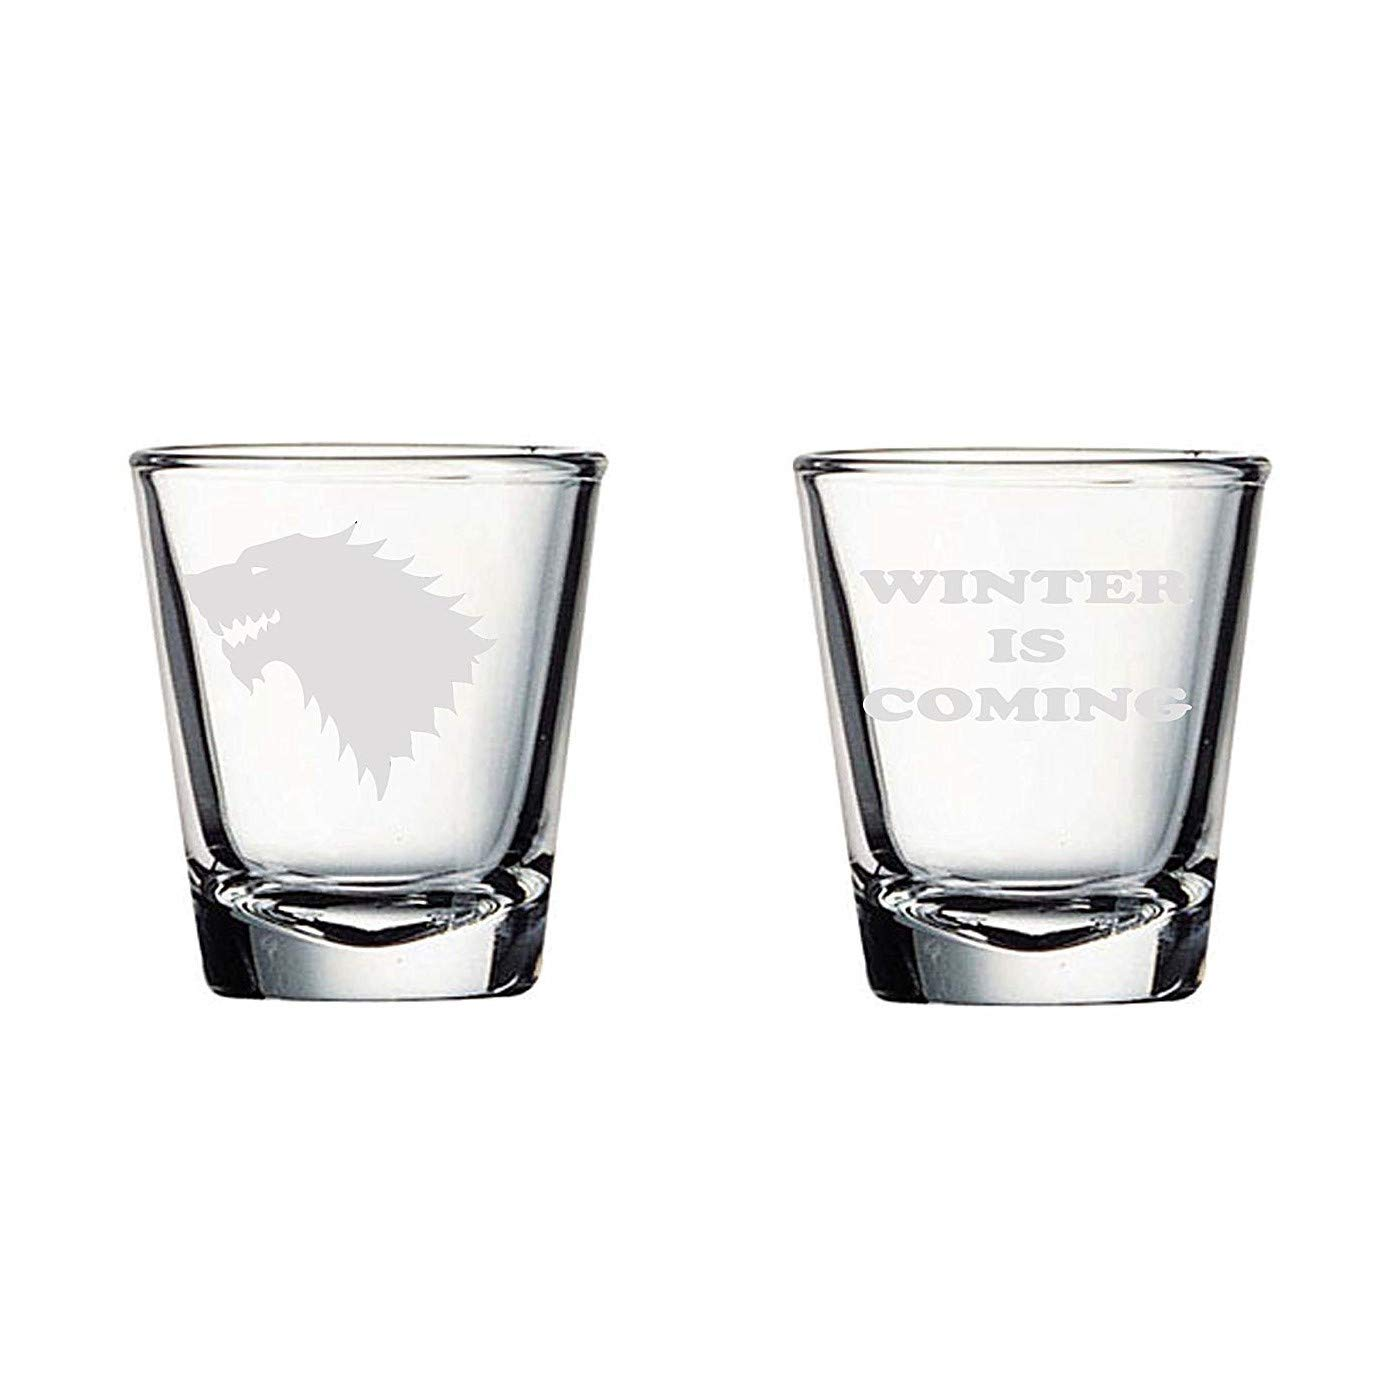 House Stark Shot Glass Set of Two (By Brindle Designs) Game of Thrones Shot Glass/Toothpick Holder Set: Stark Sigil and Winter Is Coming